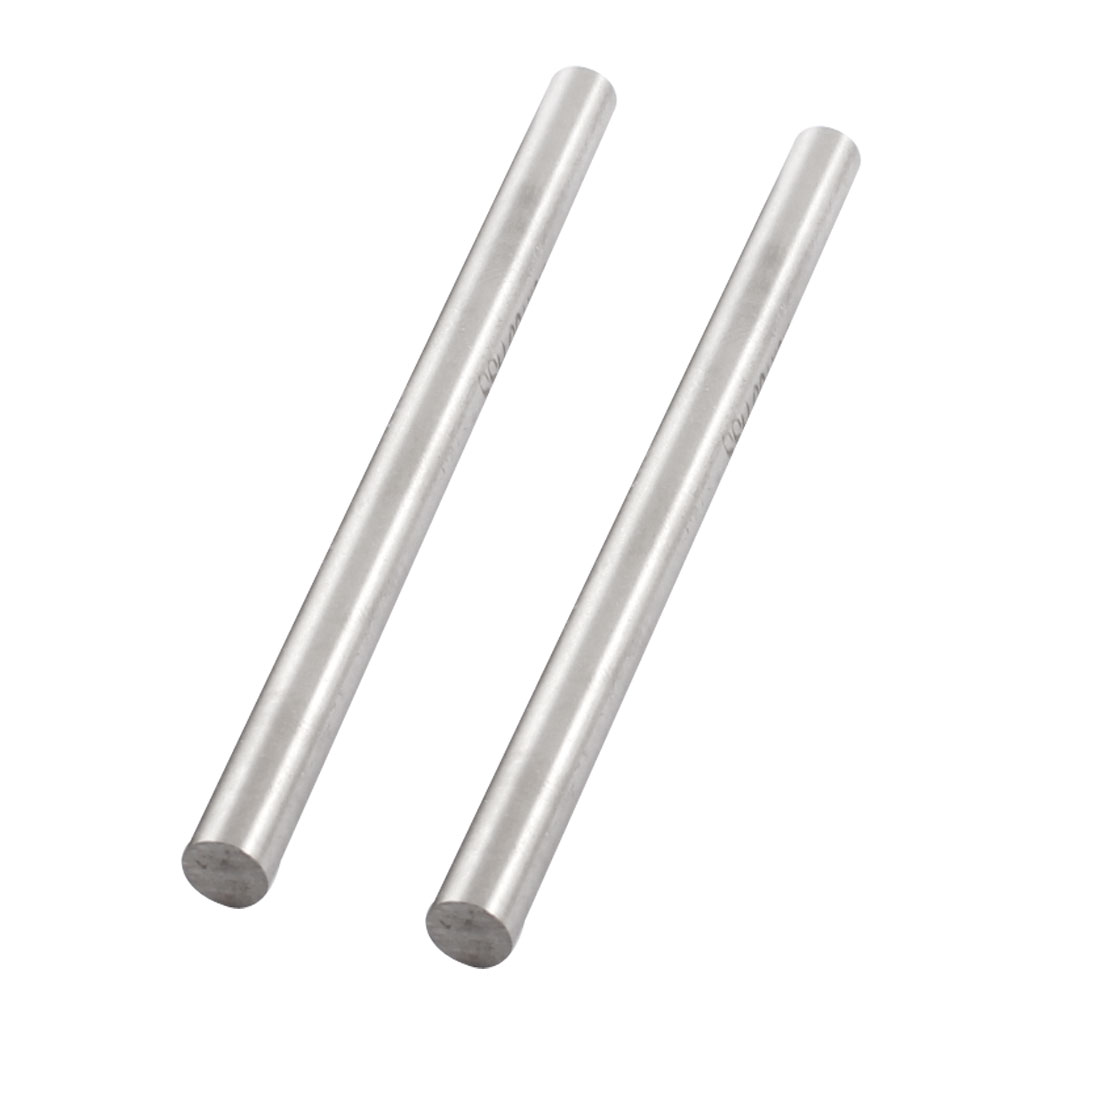 6.5mm x 100mm Straight HSS Machine Turning Round Lathe Bar Rod Silver Tone 2 Pcs